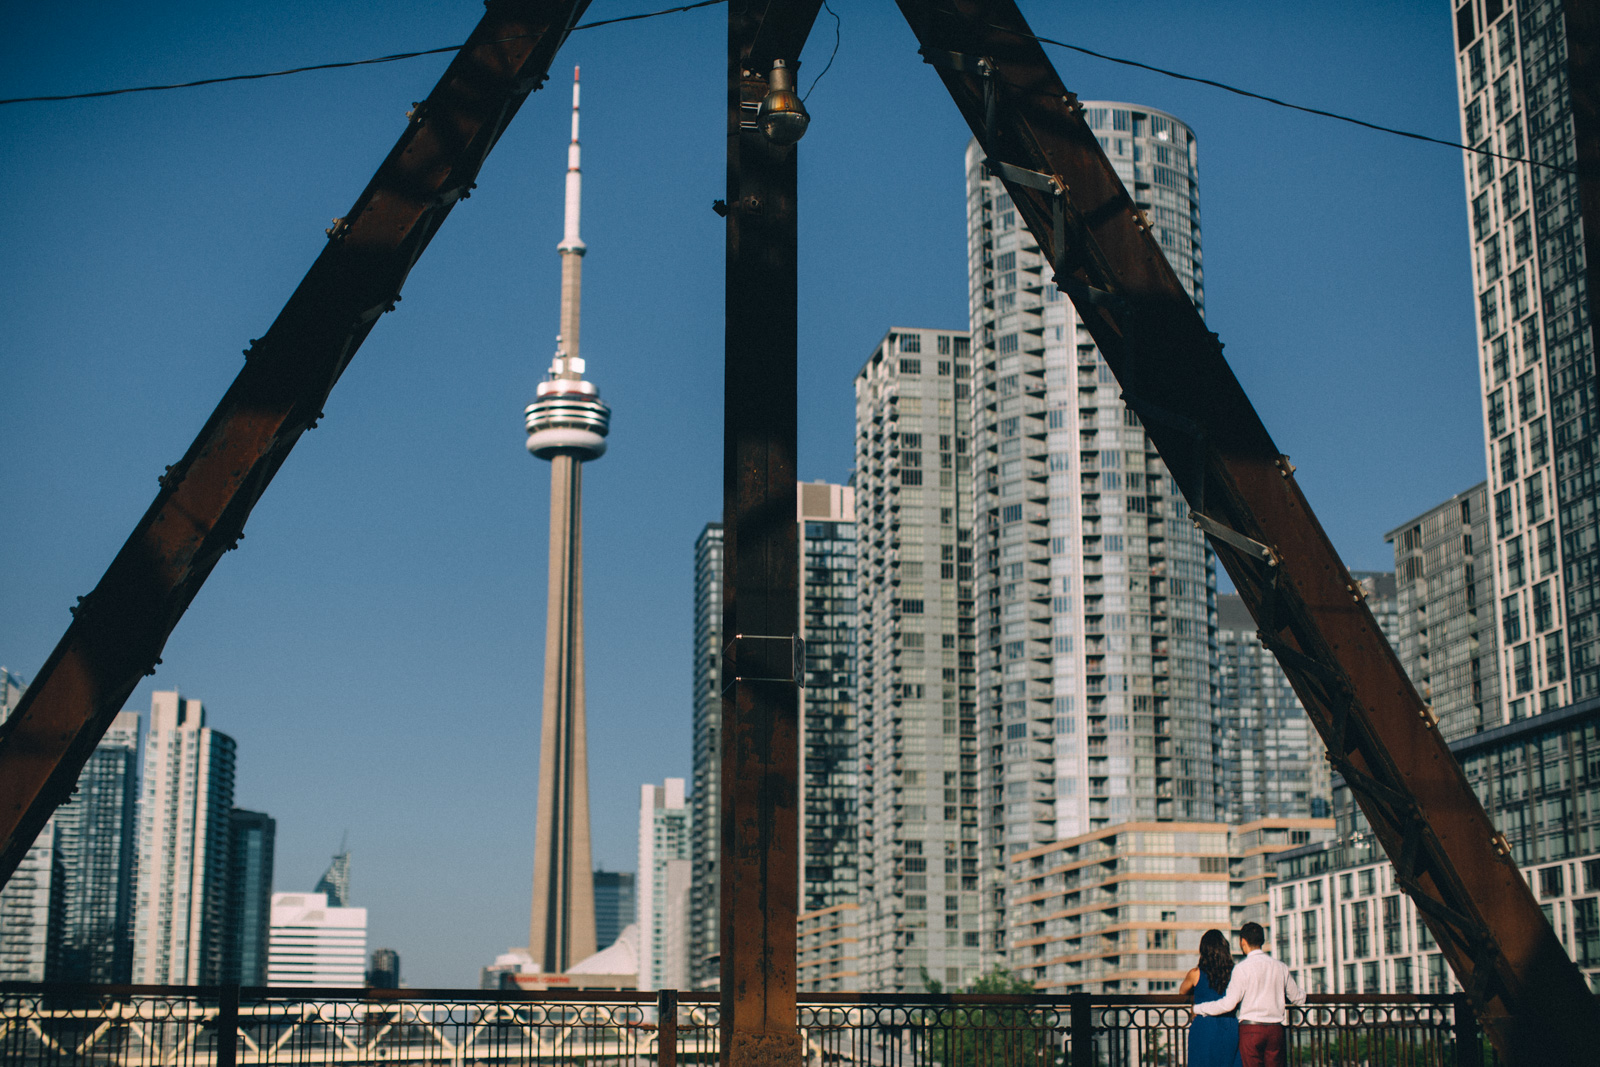 Toronto-waterfront-lifestyle-engagement-photography-by-Sam-Wong-Visual-Cravings_02